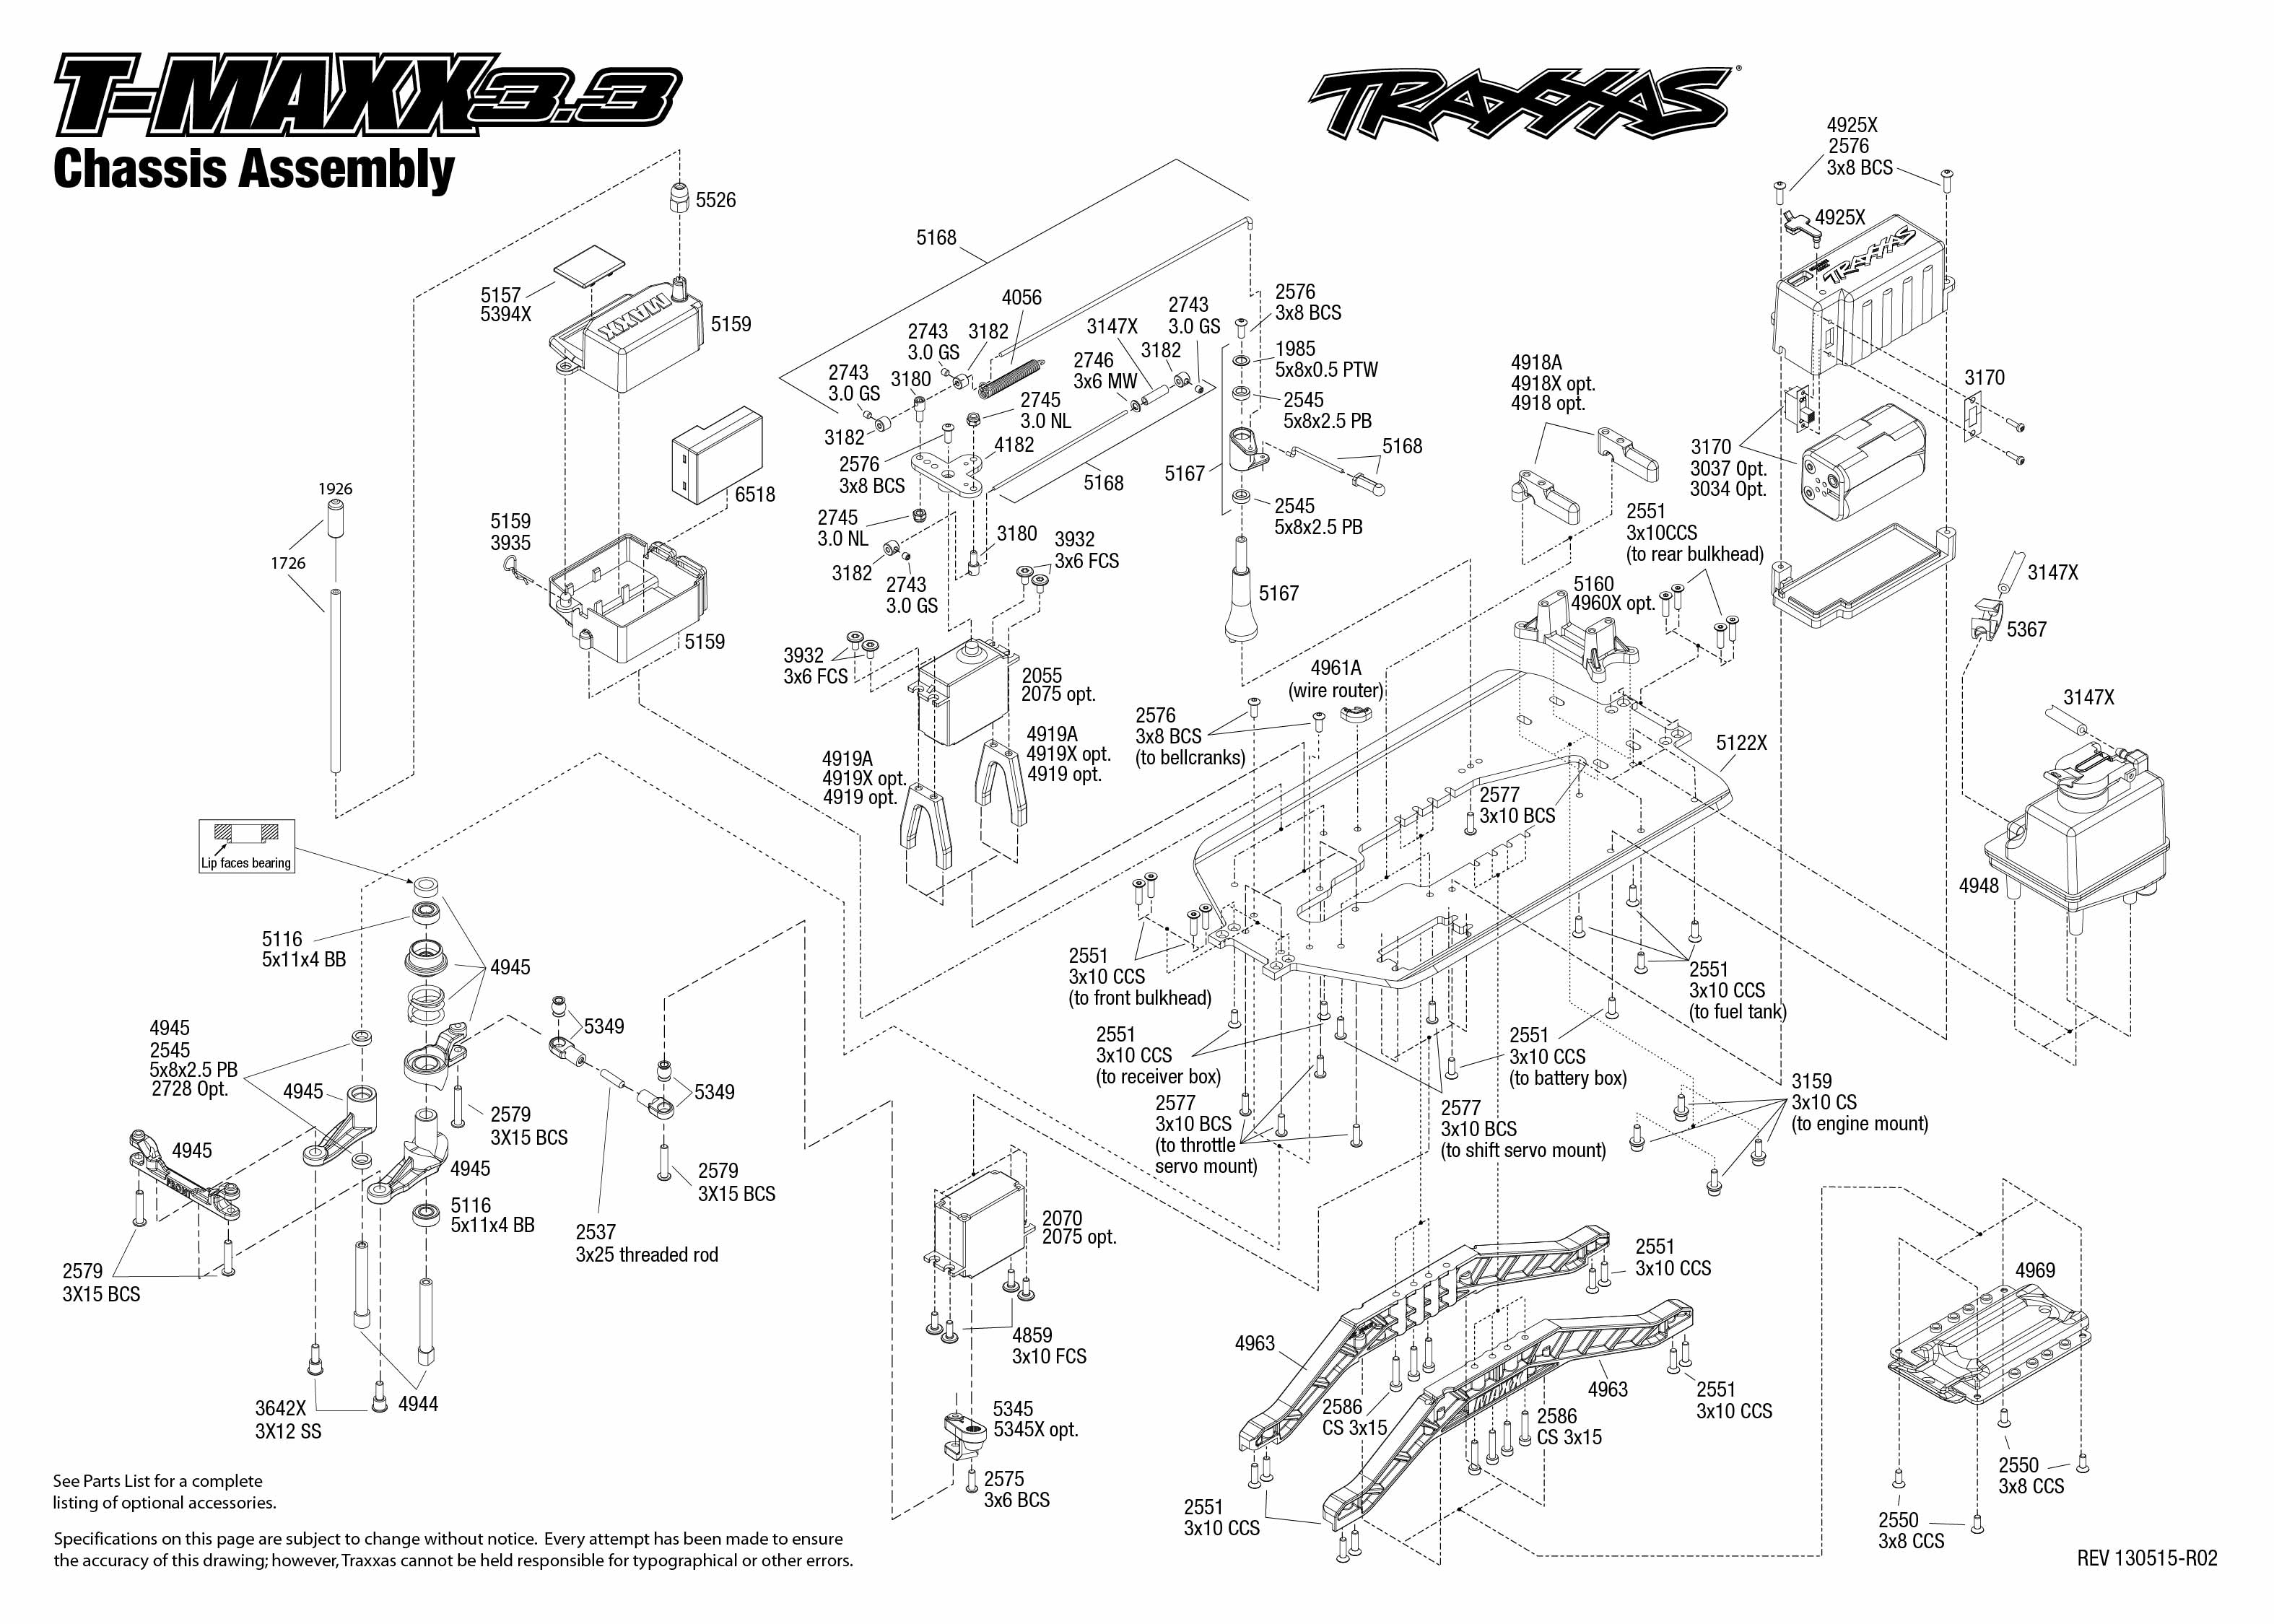 4907_Tmaxx33_TQi_explodedviews 130515_4907 Chassis Assembly traxxas 1 10 scale t maxx 3 3 4wd monster truck 4907 traxxas 6518 wiring diagram at webbmarketing.co